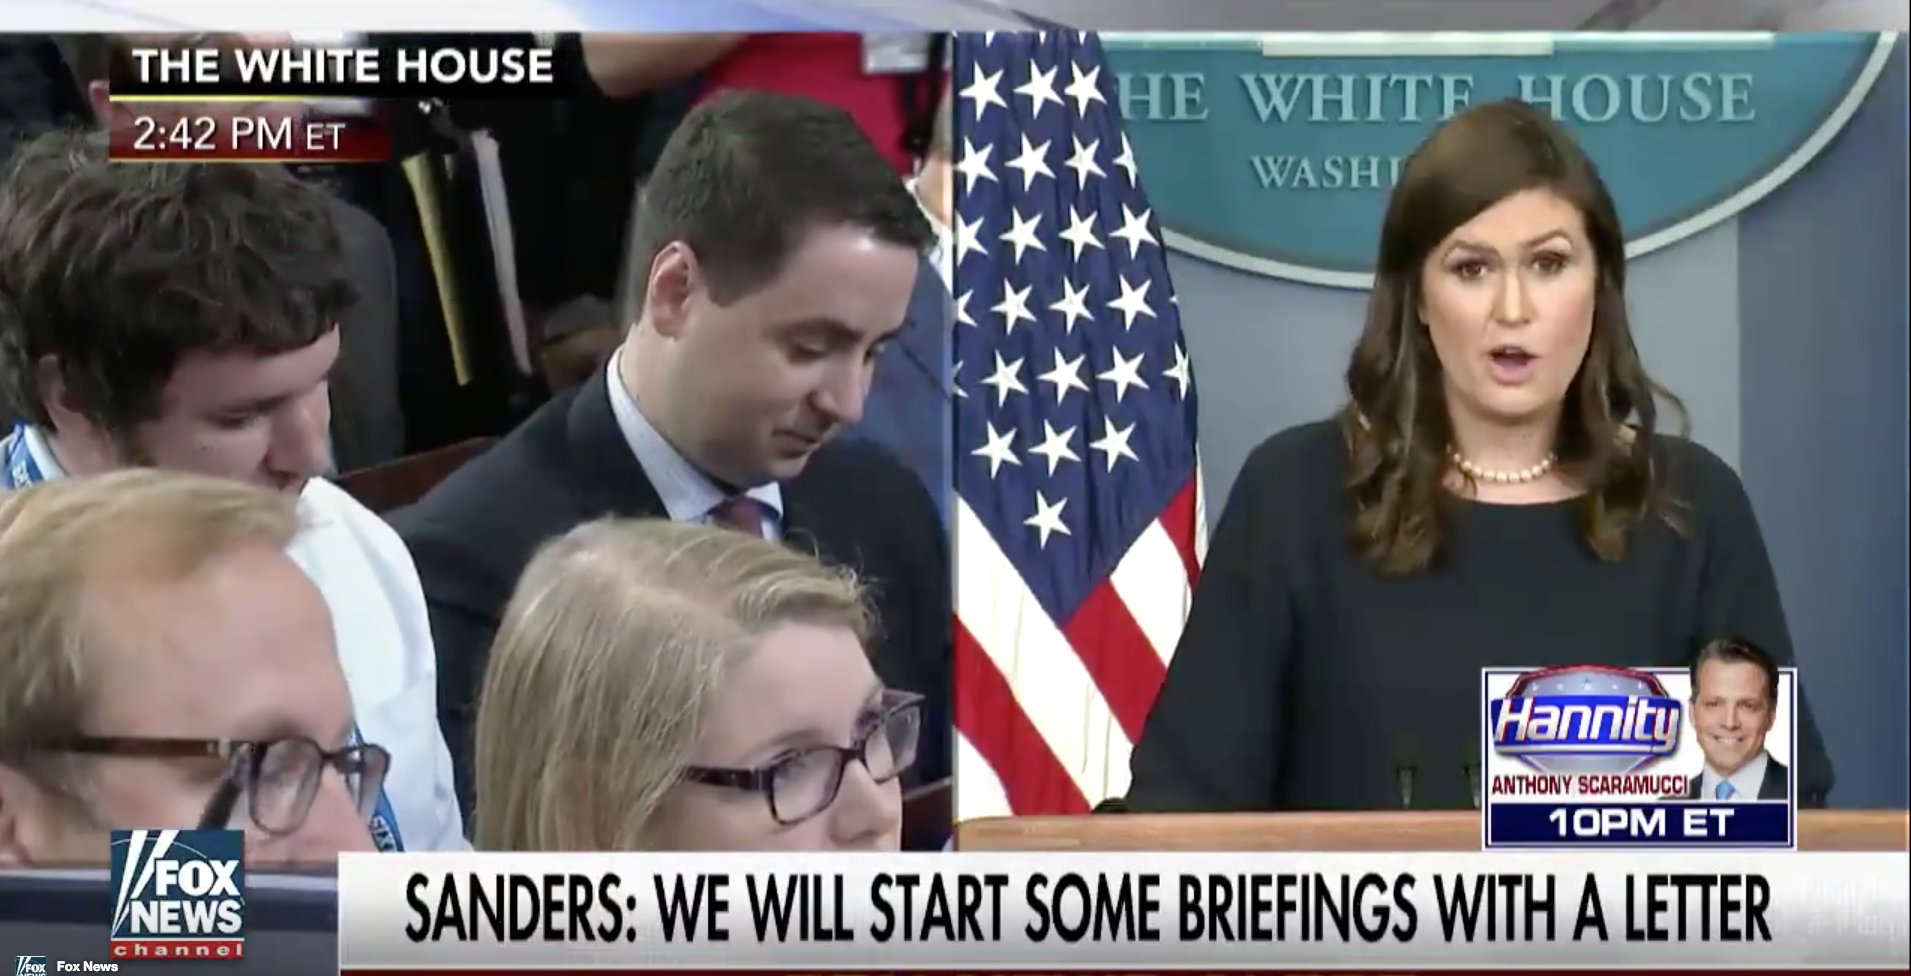 Um, White House press briefings will begin with letters of praise for Trump https://t.co/HwZDeU7SYW https://t.co/BpbtWbuEFm